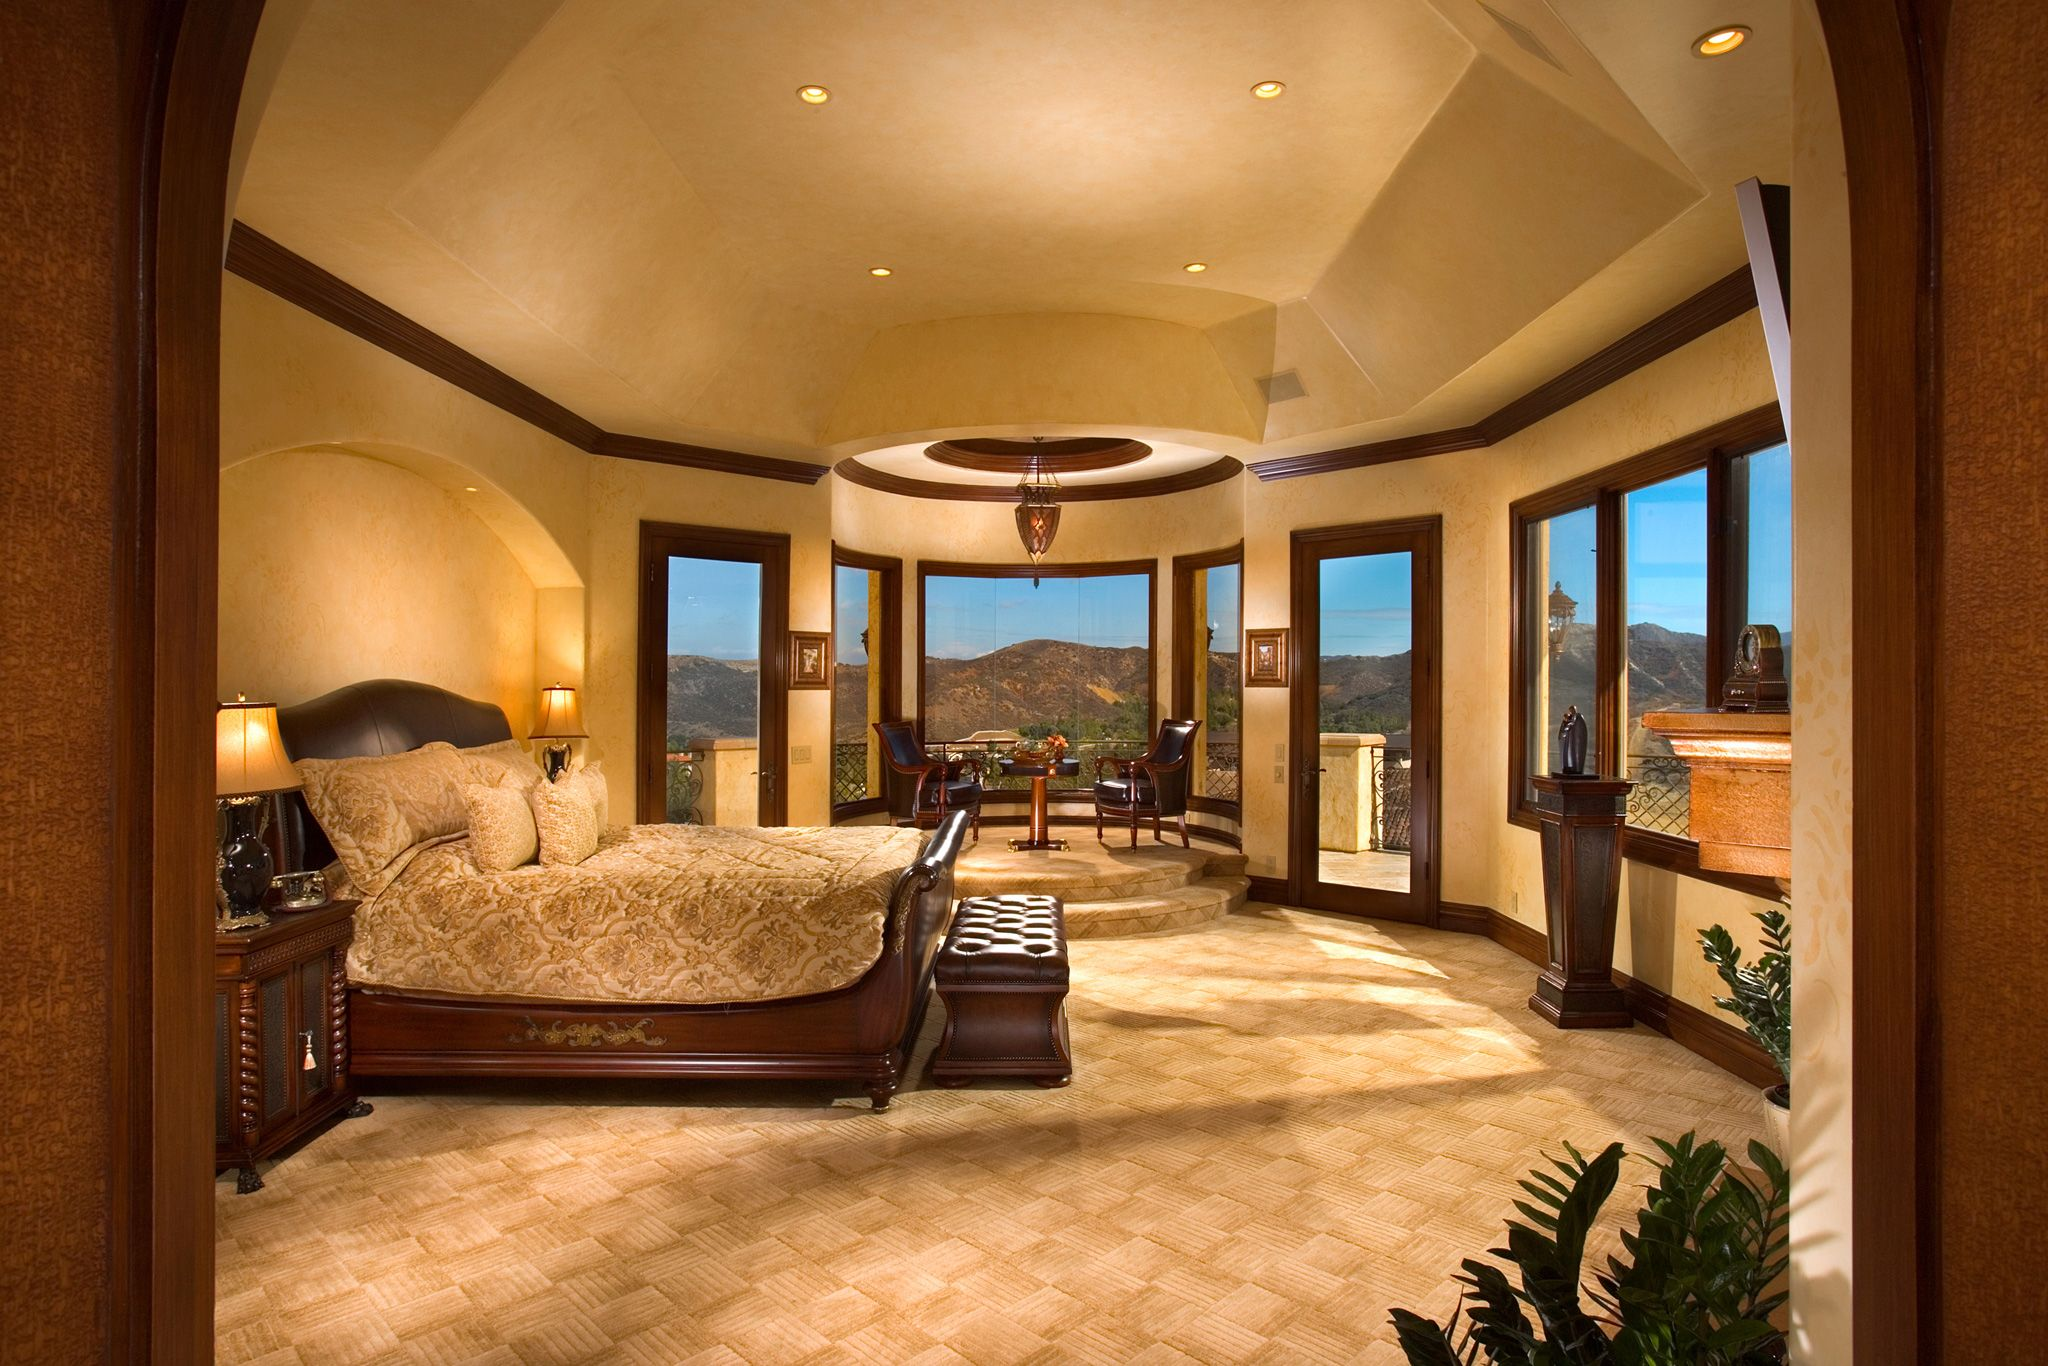 21 Incredible Master Bedrooms Design Ideas Luxury Master Bedroom Master Bedroom Design And